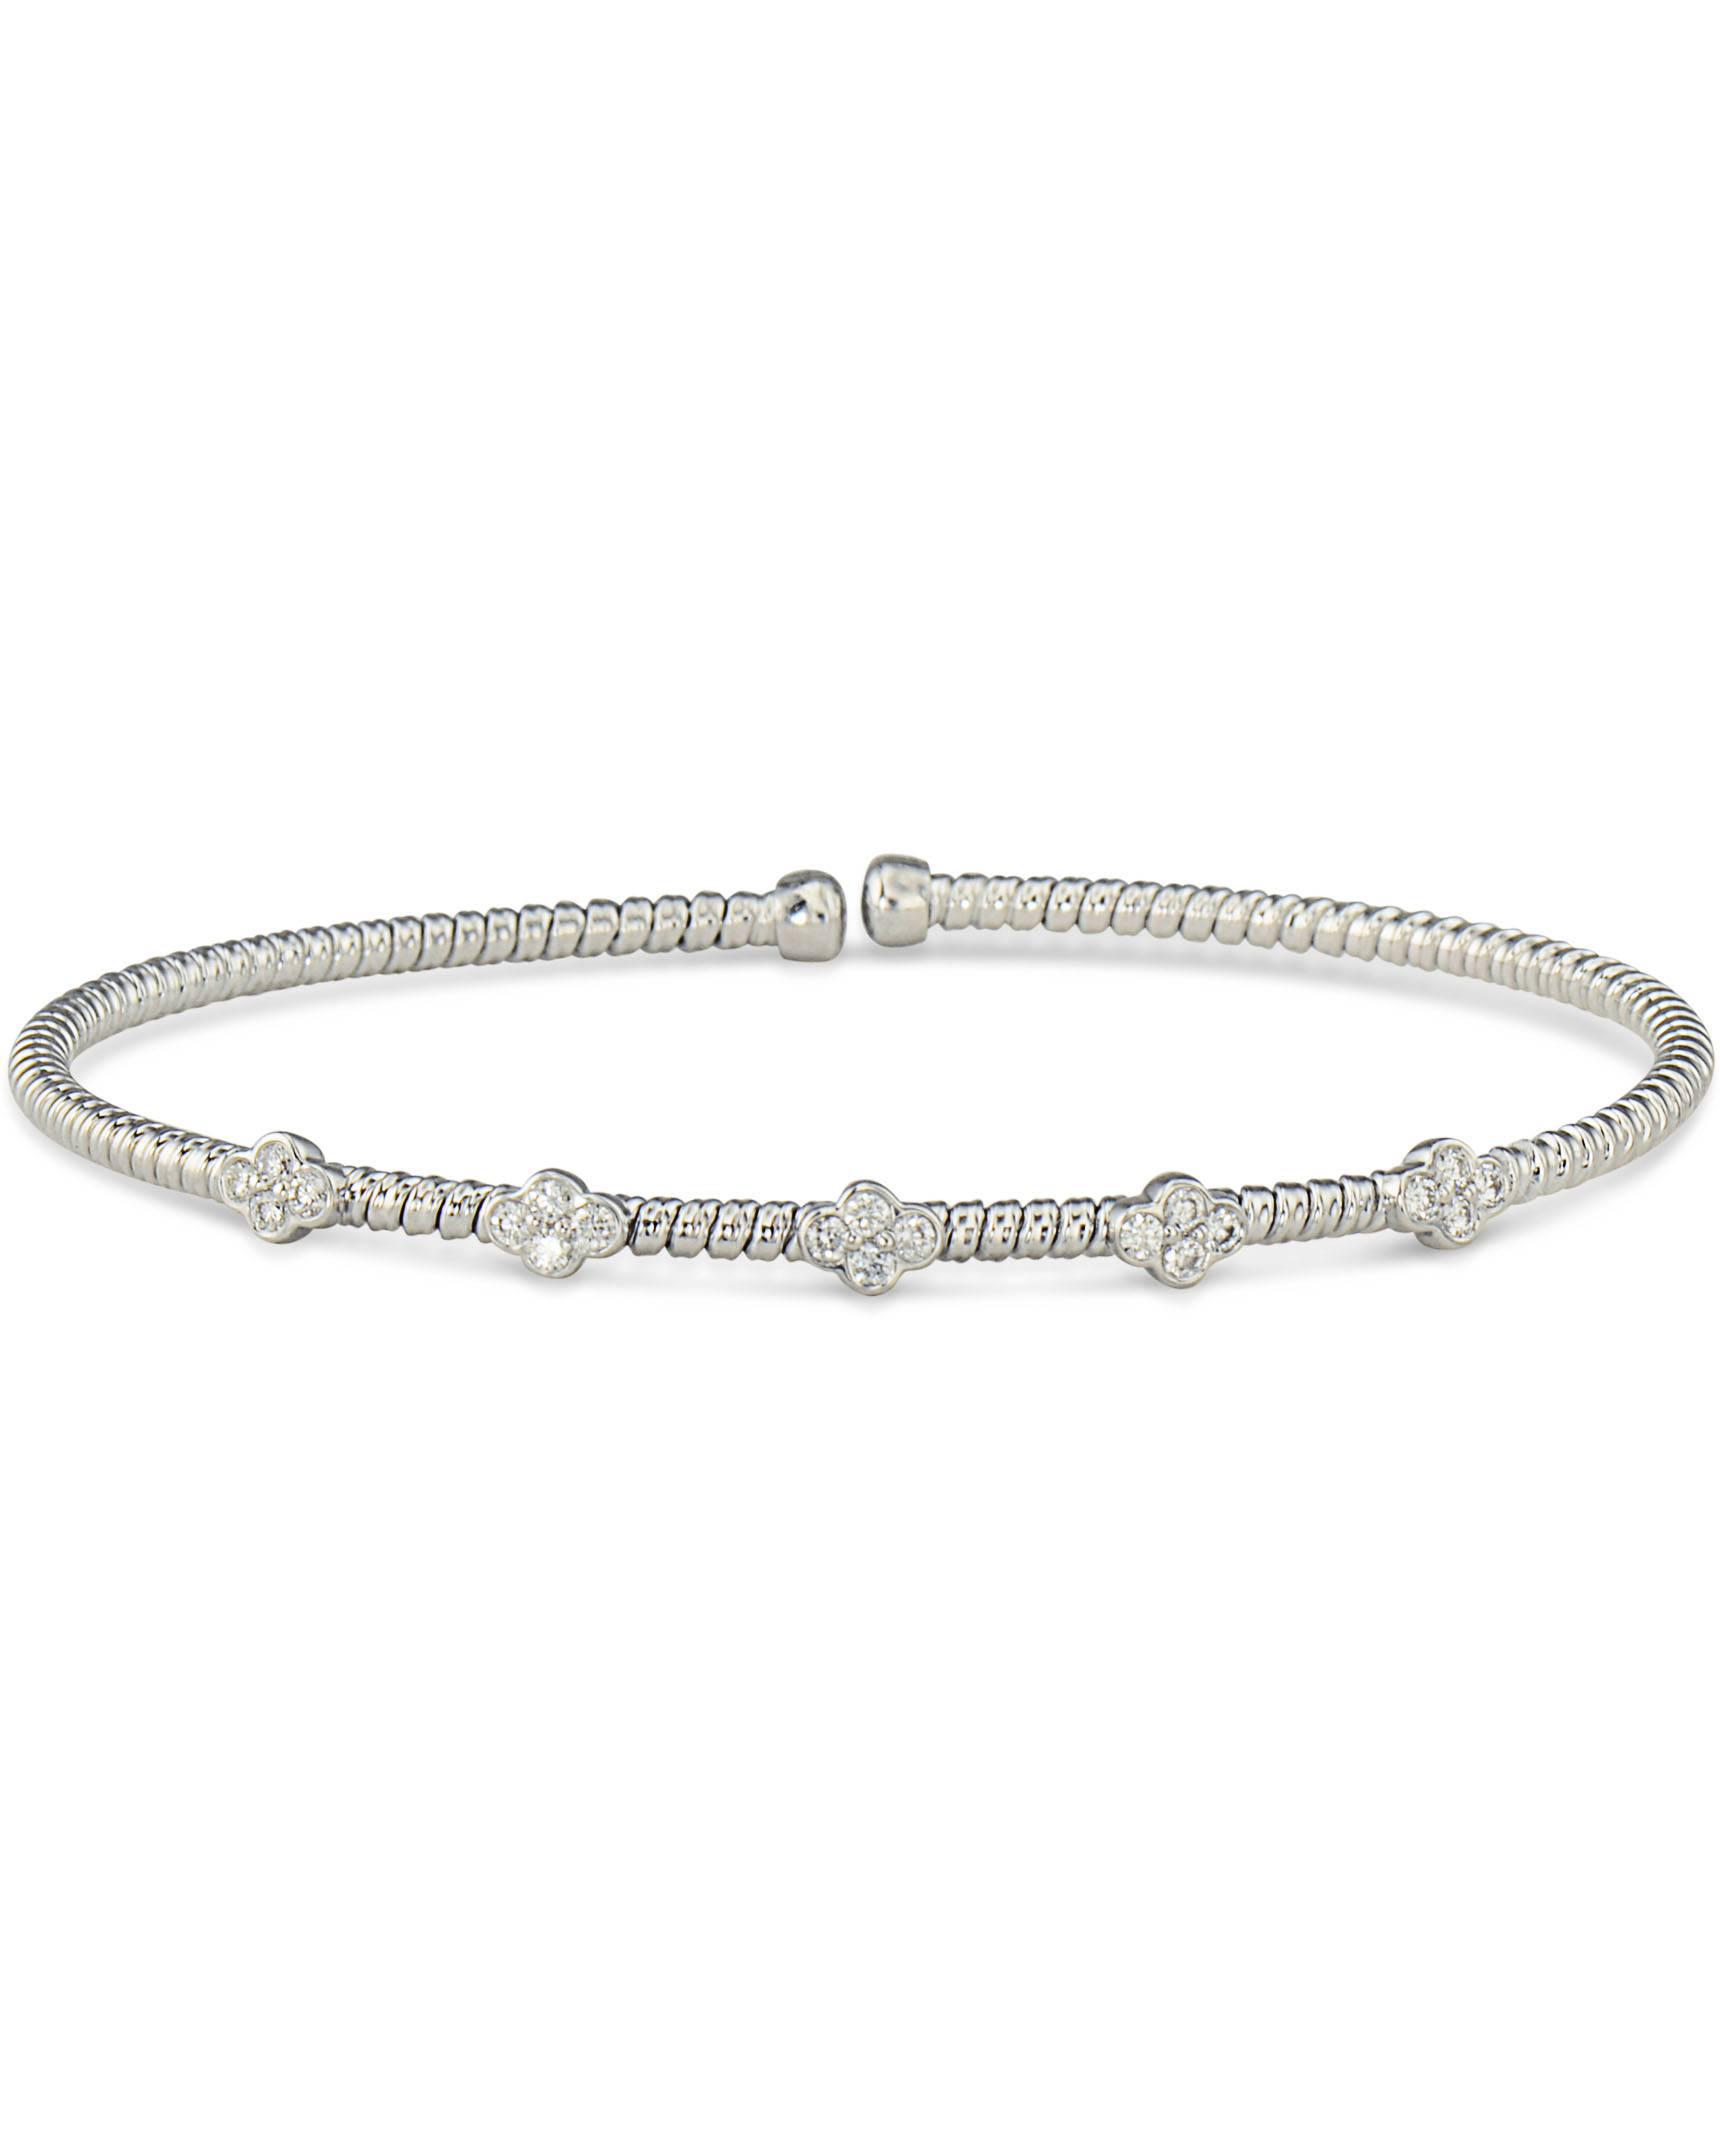 Simple White Gold Diamond Bracelet